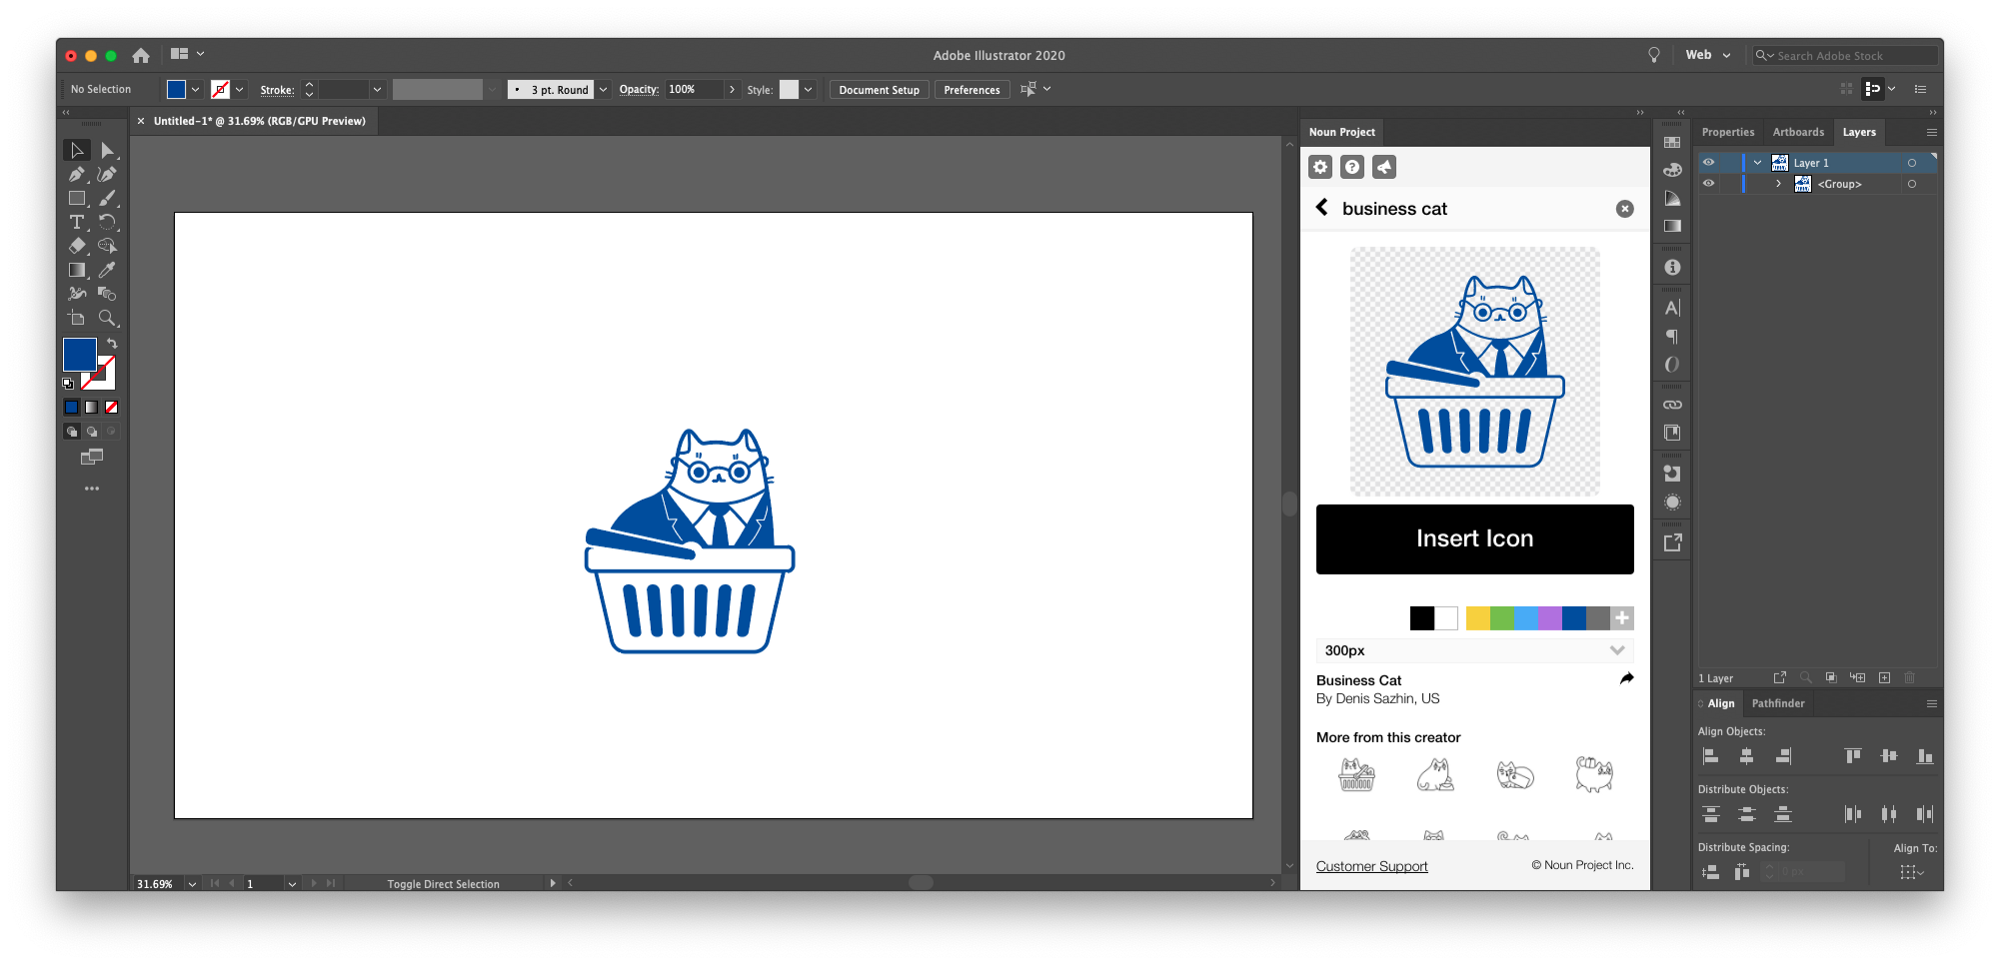 The first step in our guide to how to make a pattern in Illustrator: insert icons using the Noun Project Add-In for Adobe Illustrator that will let you instantly add as many as you want and customize them by adjusting color, size, and rotation.